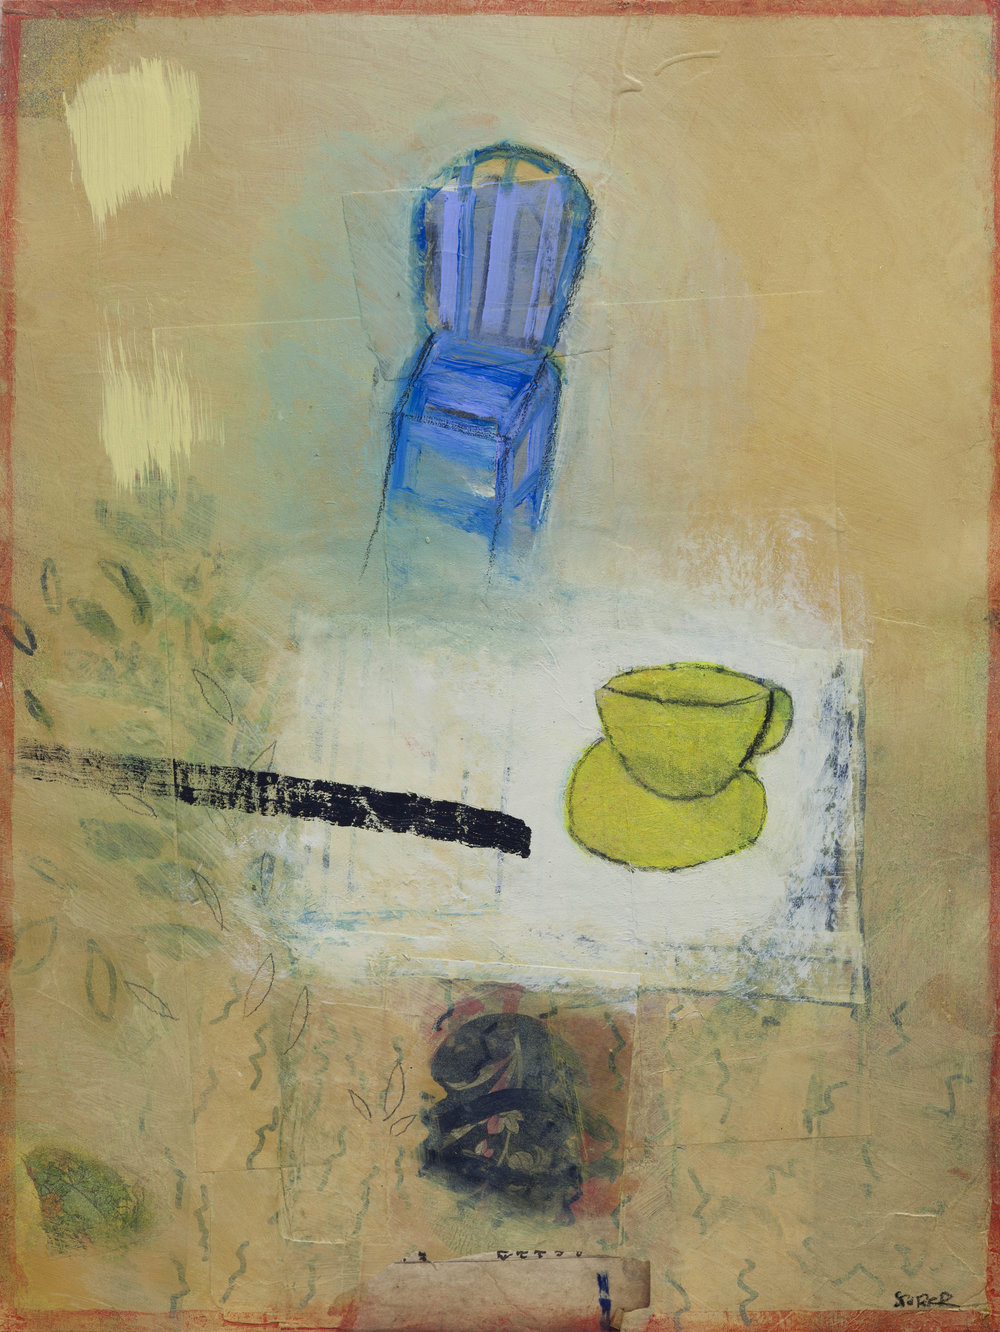 Blue Chair, 2017, 12 x 16, paper